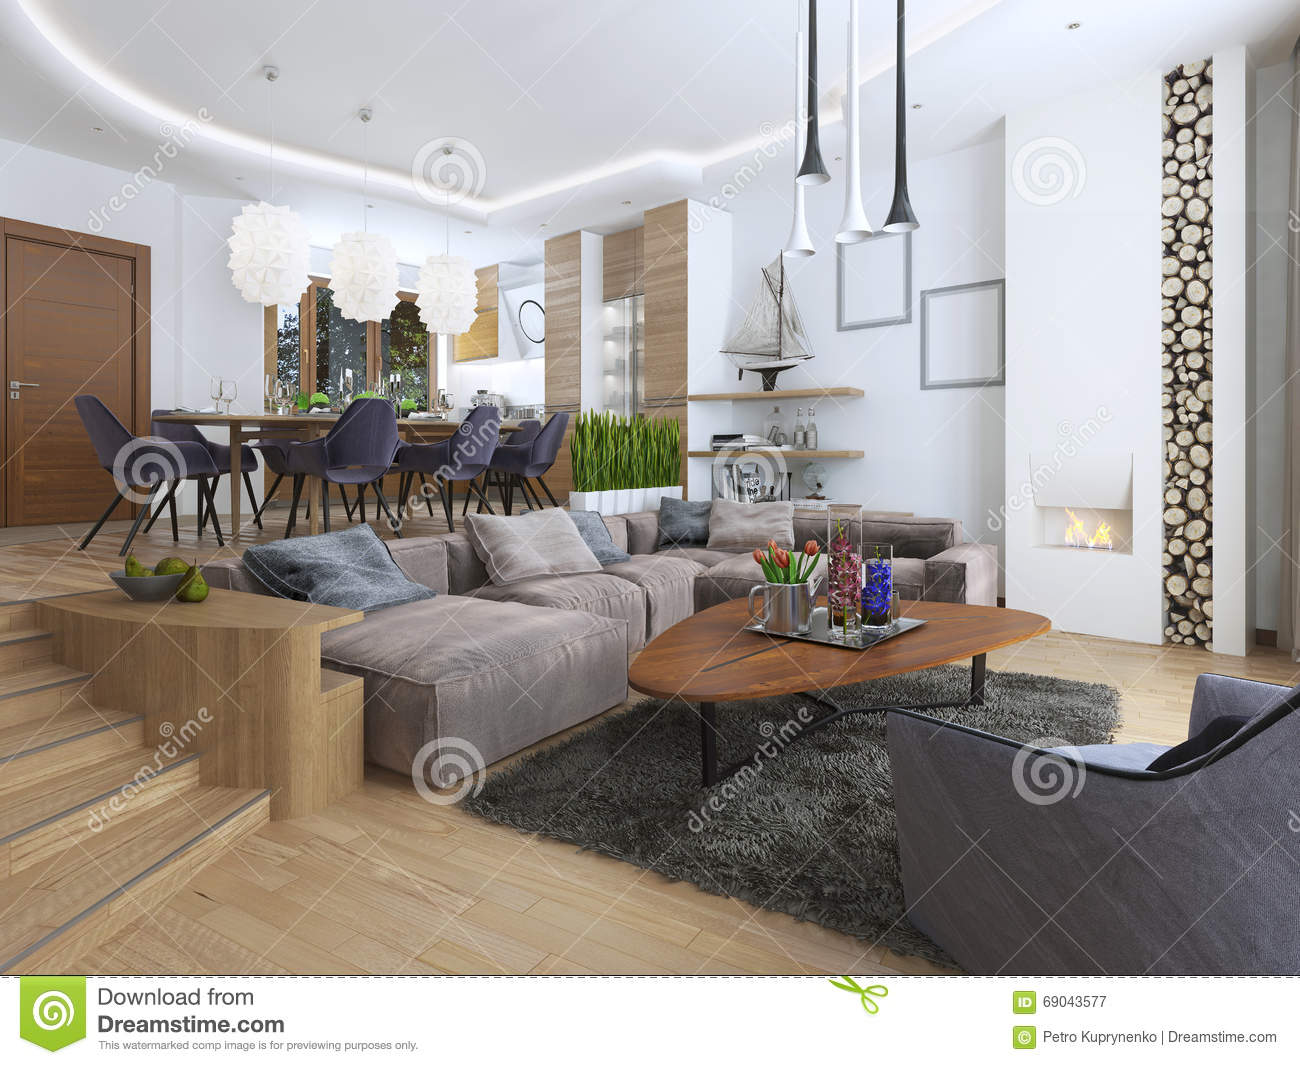 Modern Living Room In A Loft Style, Blending Smoothly Into The Kitchen  Dining Room. Large Corner Sofa, Shelves With Decorations, Soft Chair With A  Floor ...